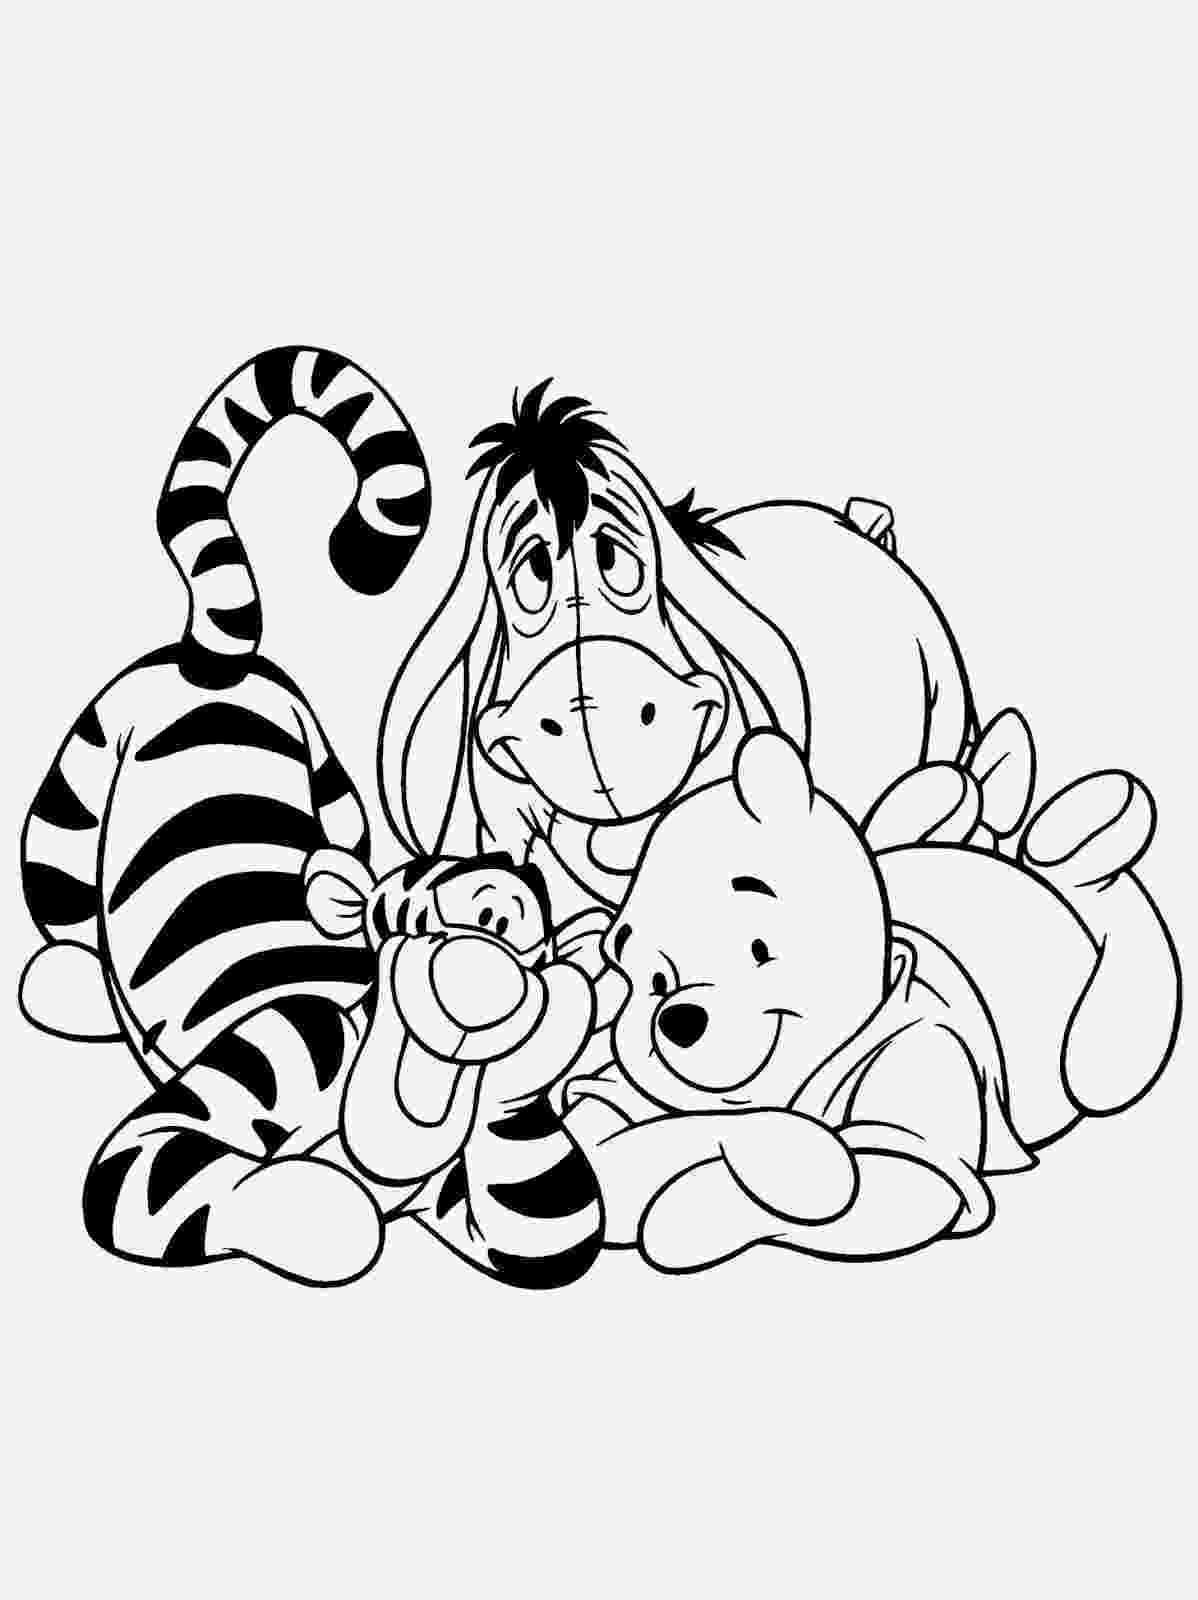 free winnie the pooh coloring pages free printable winnie the pooh coloring pages for kids winnie pooh pages the free coloring